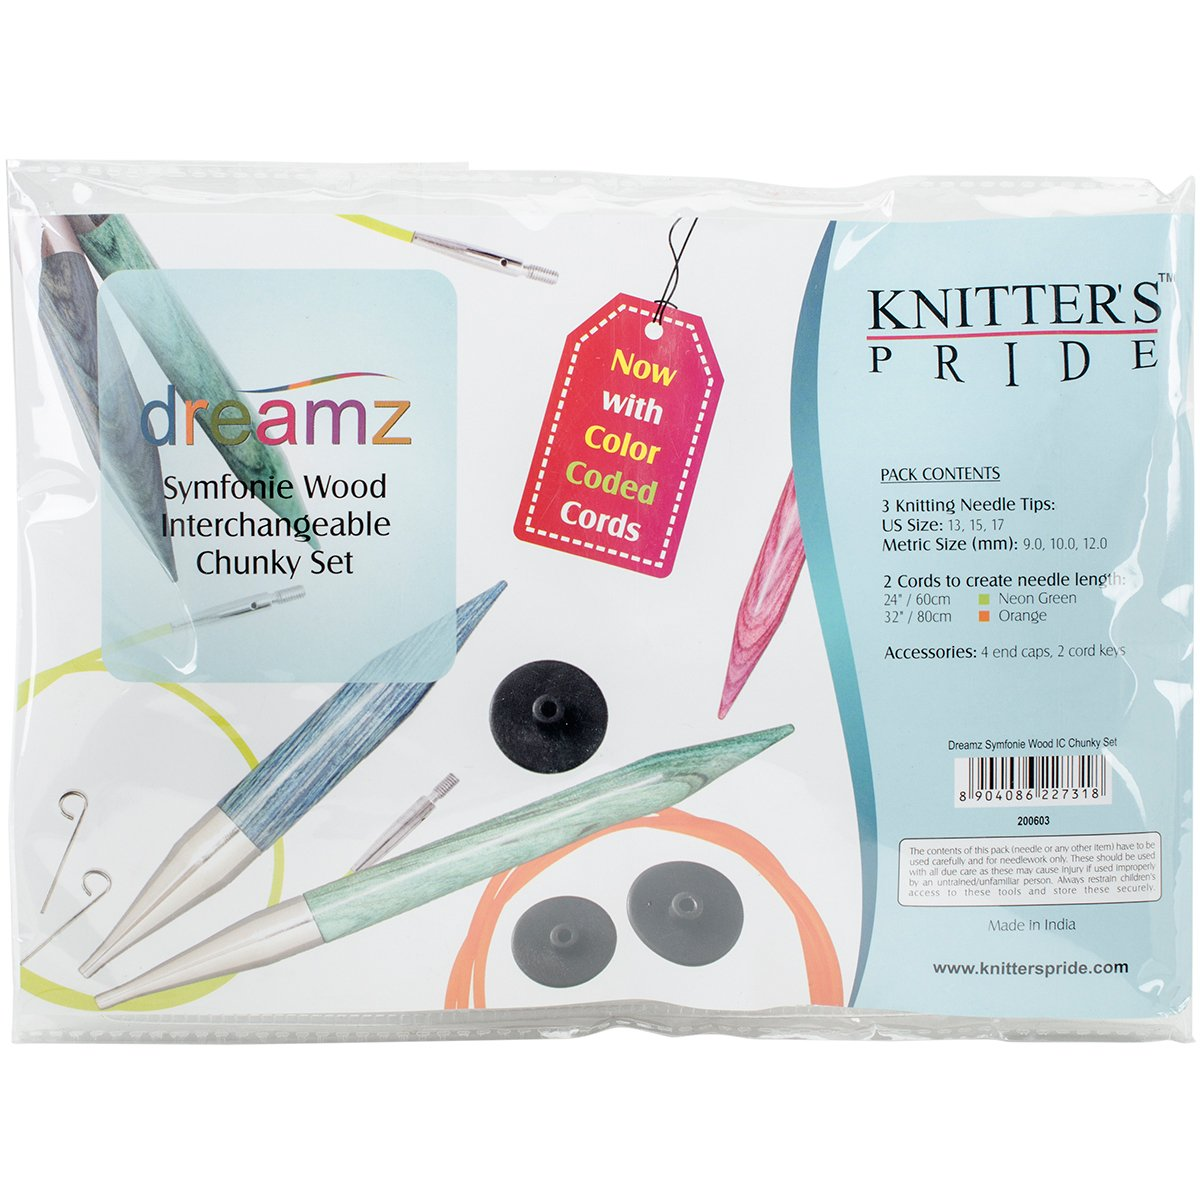 Knitter's Pride KP200603 Dreamz Chunky Interchangeable Needles Set Notions